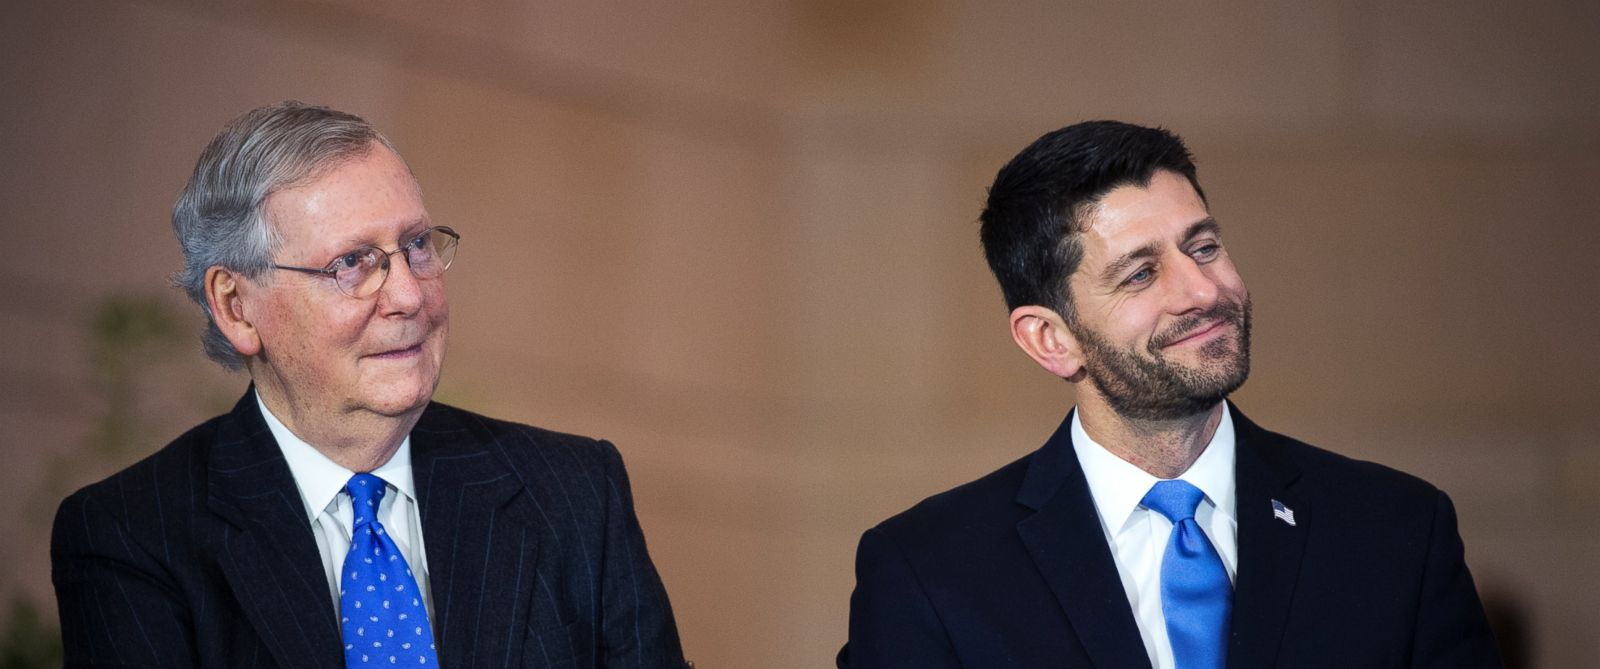 PHOTO: Mitch McConnell and Paul Ryan attend a bust unveiling ceremony for former Vice President Dick Cheney in the Capitol Visitor Centers Emancipation Hall, Dec. 3, 2015.